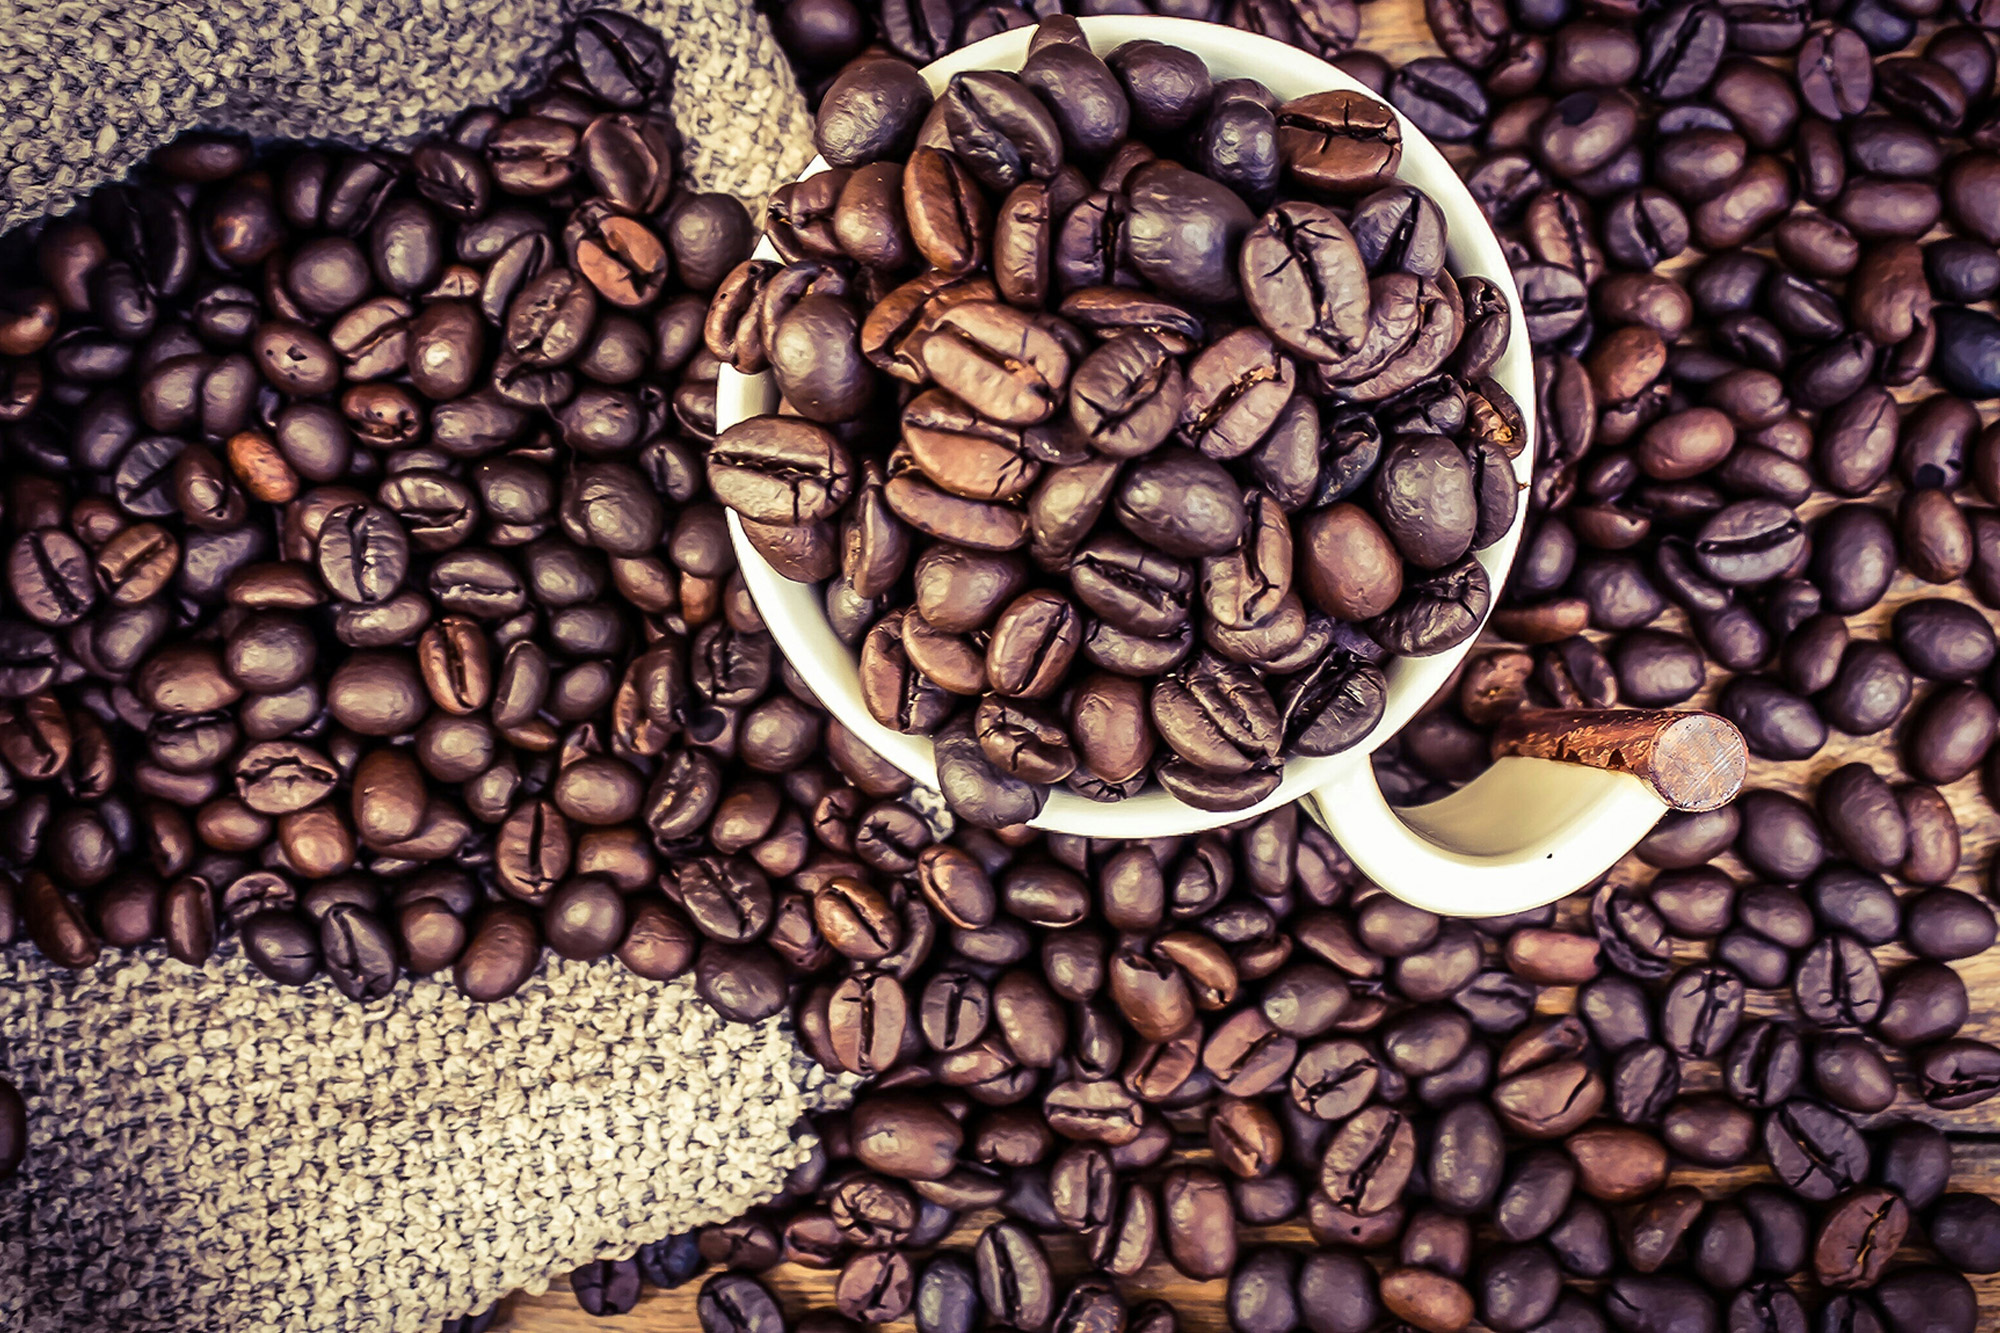 Explore the Different Varieties of Coffee Beans